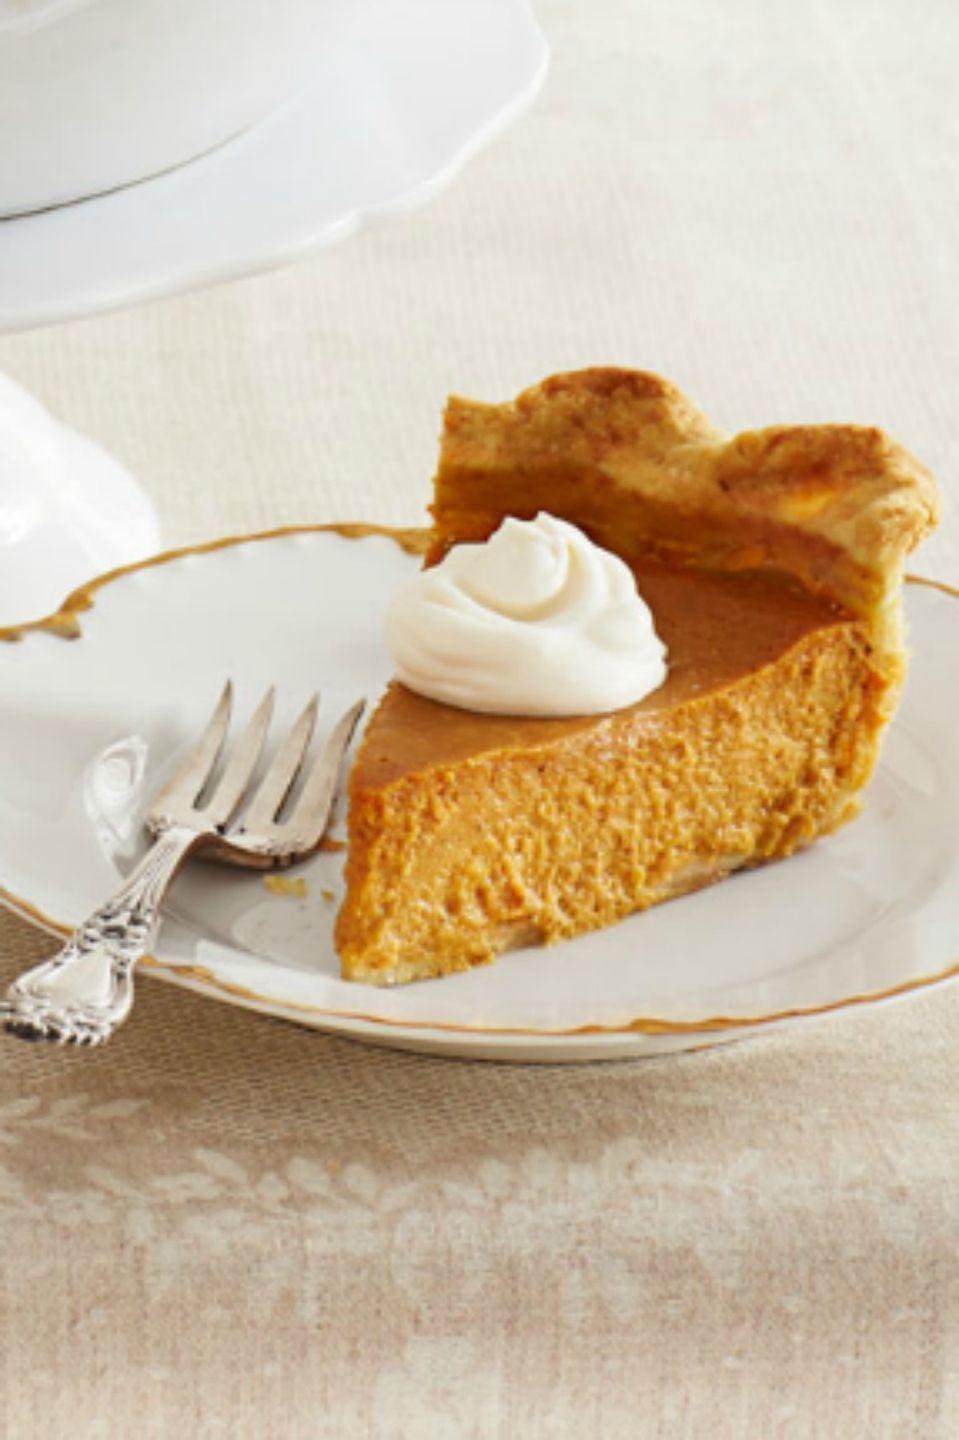 "<p>You can't go wrong with a classic <a href=""https://www.womansday.com/food-recipes/food-drinks/g1965/pumpkin-pie-recipes/"" rel=""nofollow noopener"" target=""_blank"" data-ylk=""slk:pumpkin pie recipe"" class=""link rapid-noclick-resp"">pumpkin pie recipe</a> — especially when it's paired with a rum-infused whipped cream. </p><p><strong><em><a href=""https://www.womansday.com/food-recipes/food-drinks/recipes/a39323/ultimate-pumpkin-pie-rum-whipped-cream-recipe-ghk1113/"" rel=""nofollow noopener"" target=""_blank"" data-ylk=""slk:Get the Pumpkin Pie with Rum Whipped Cream recipe."" class=""link rapid-noclick-resp"">Get the Pumpkin Pie with Rum Whipped Cream recipe. </a></em></strong></p>"